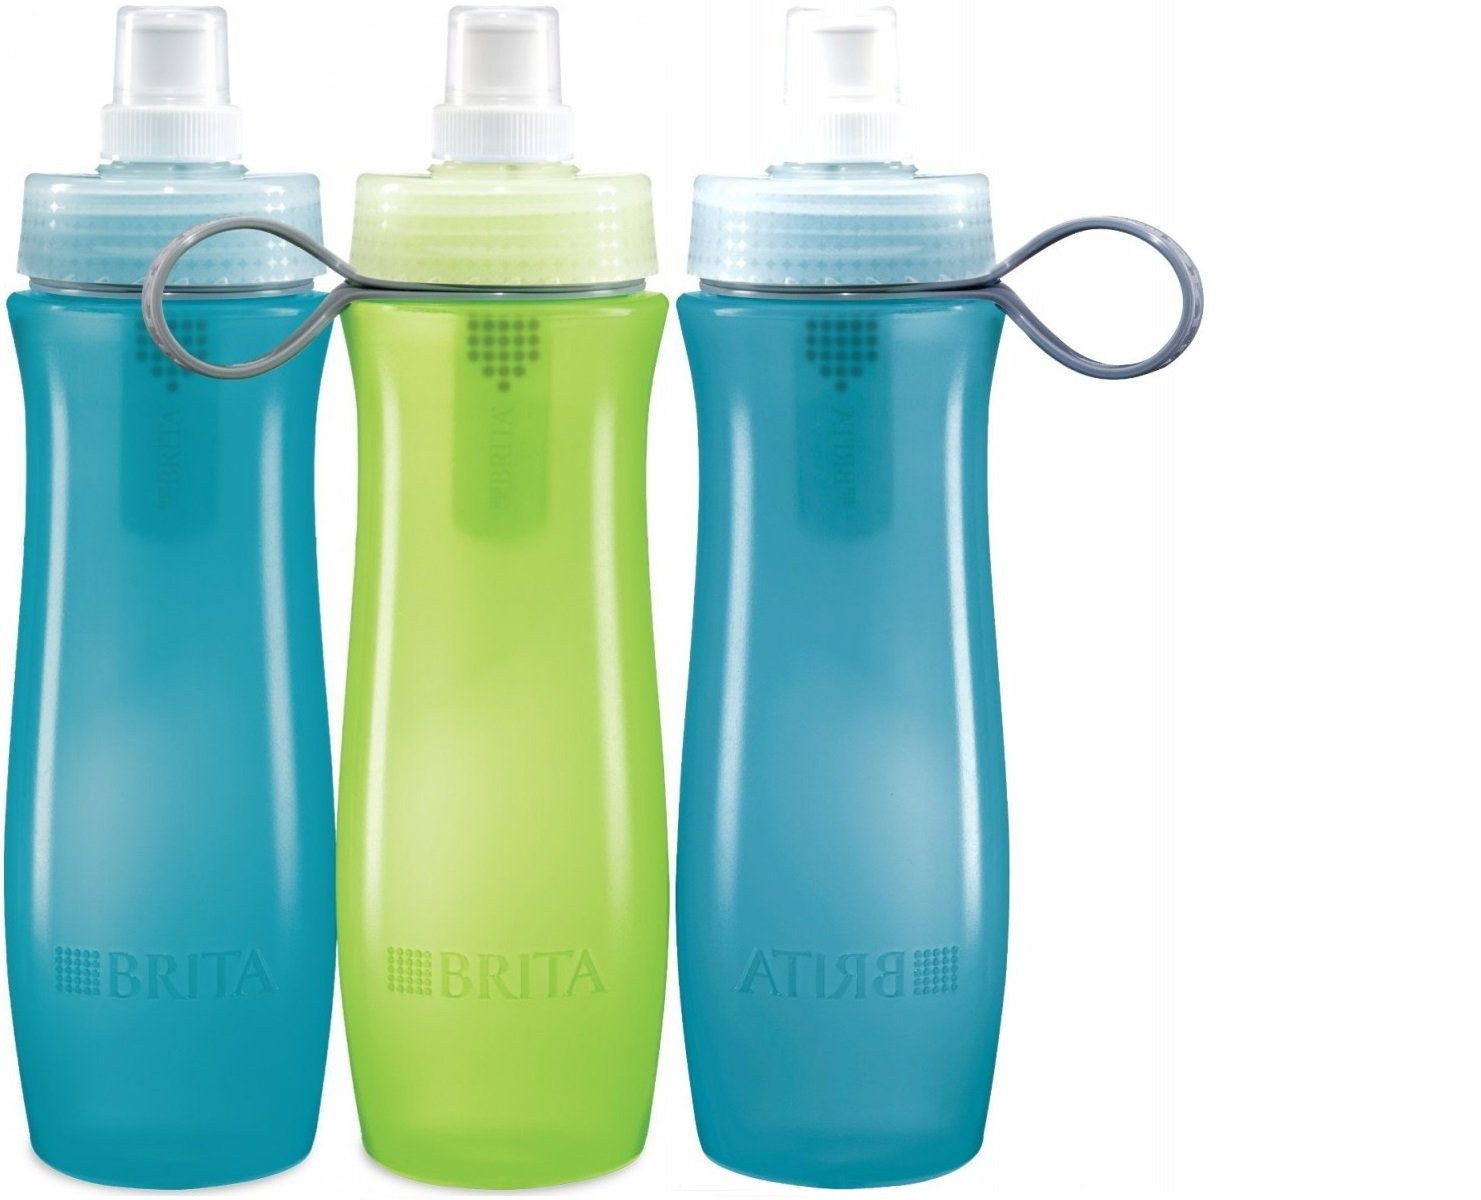 Brita Bottle Water Filtration System ~ Three 20oz Reusable Sports Bottles with 6 Filters Included 153660.001pl